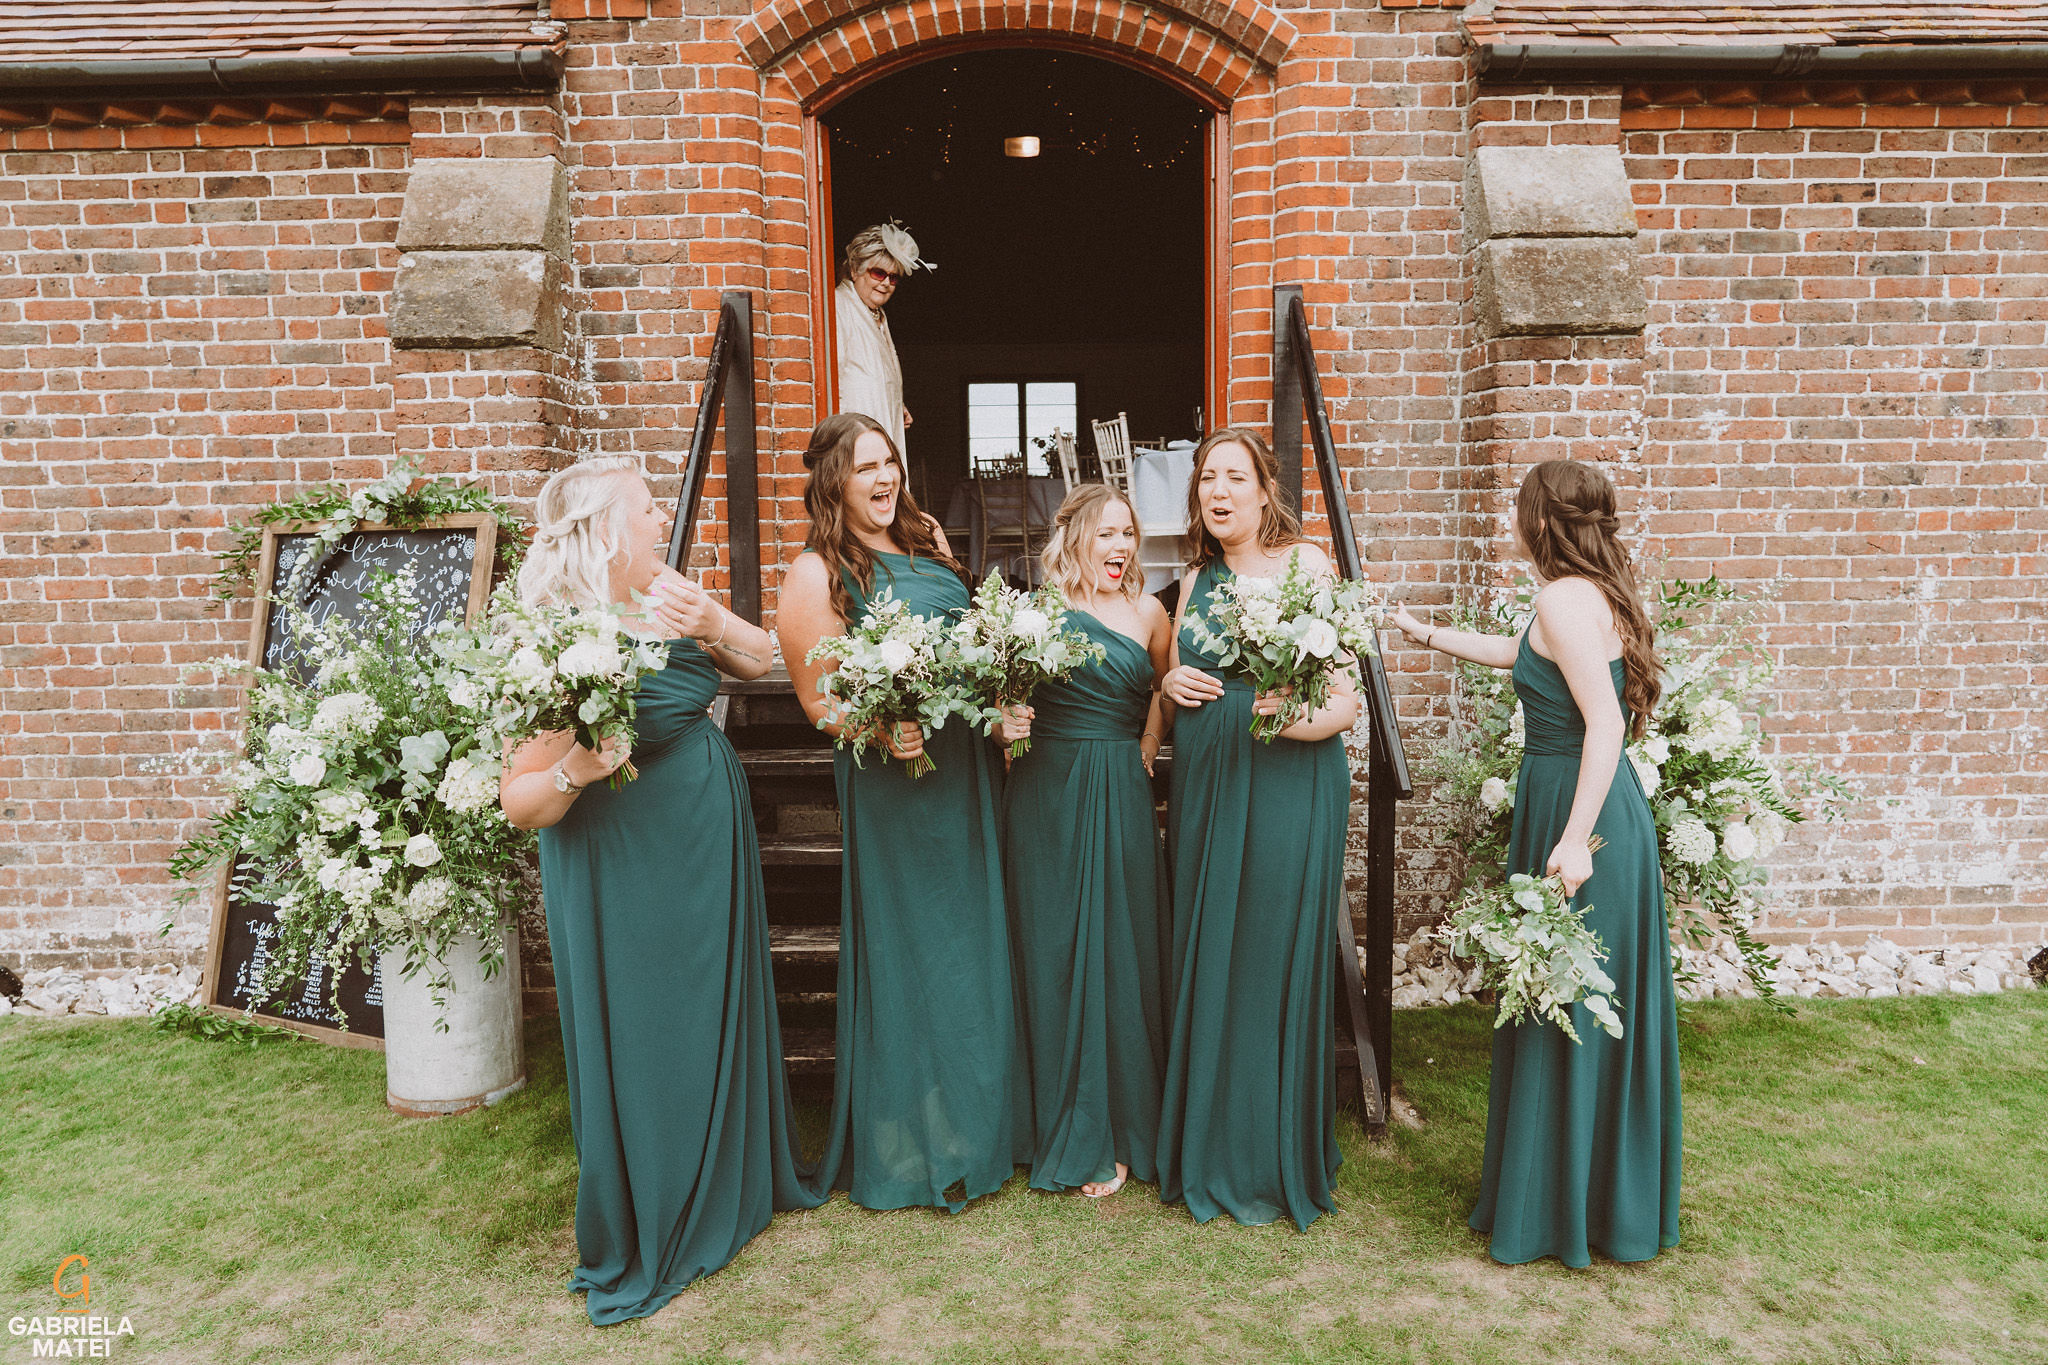 Bridesmaids having fun at South Stoke Barn wedding venue in Arundel by gabriela matei sussex photographer